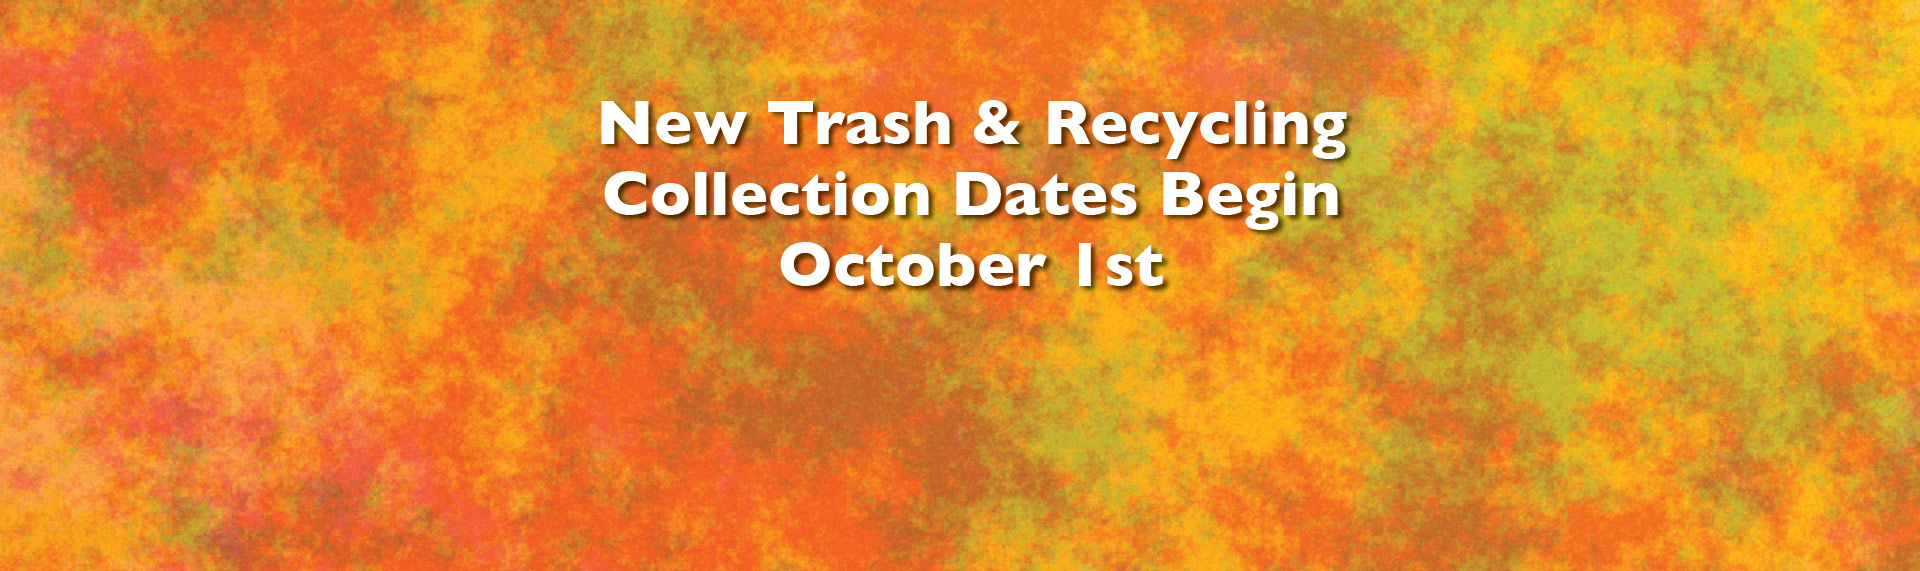 New Trash & Recycling Collection Dates Begin October 1st